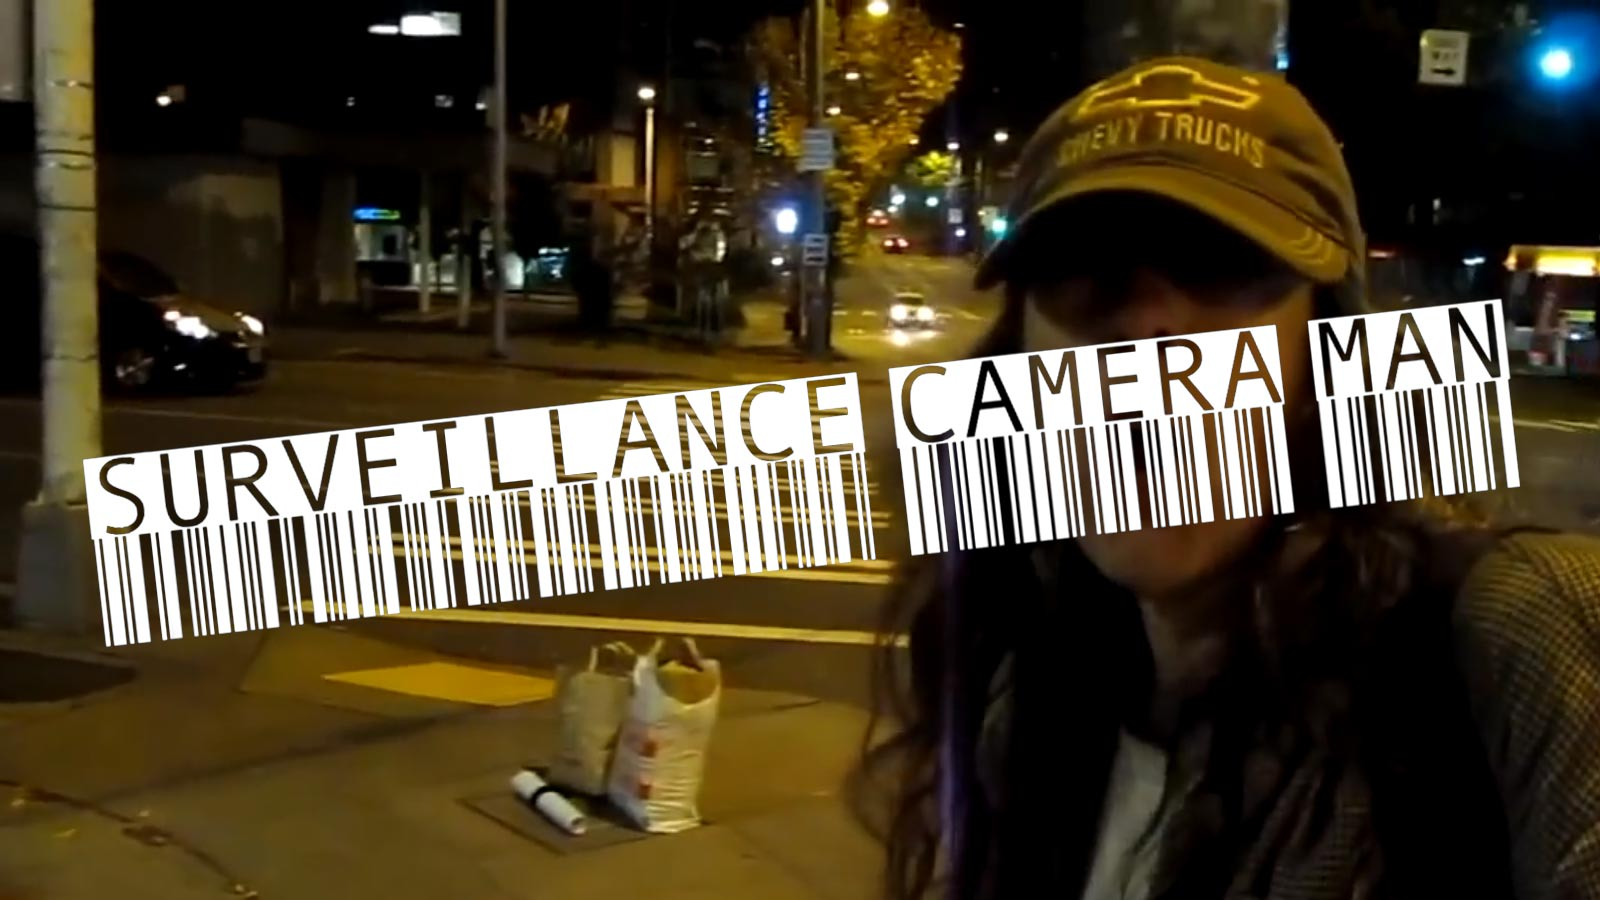 Surveillance Camera Man